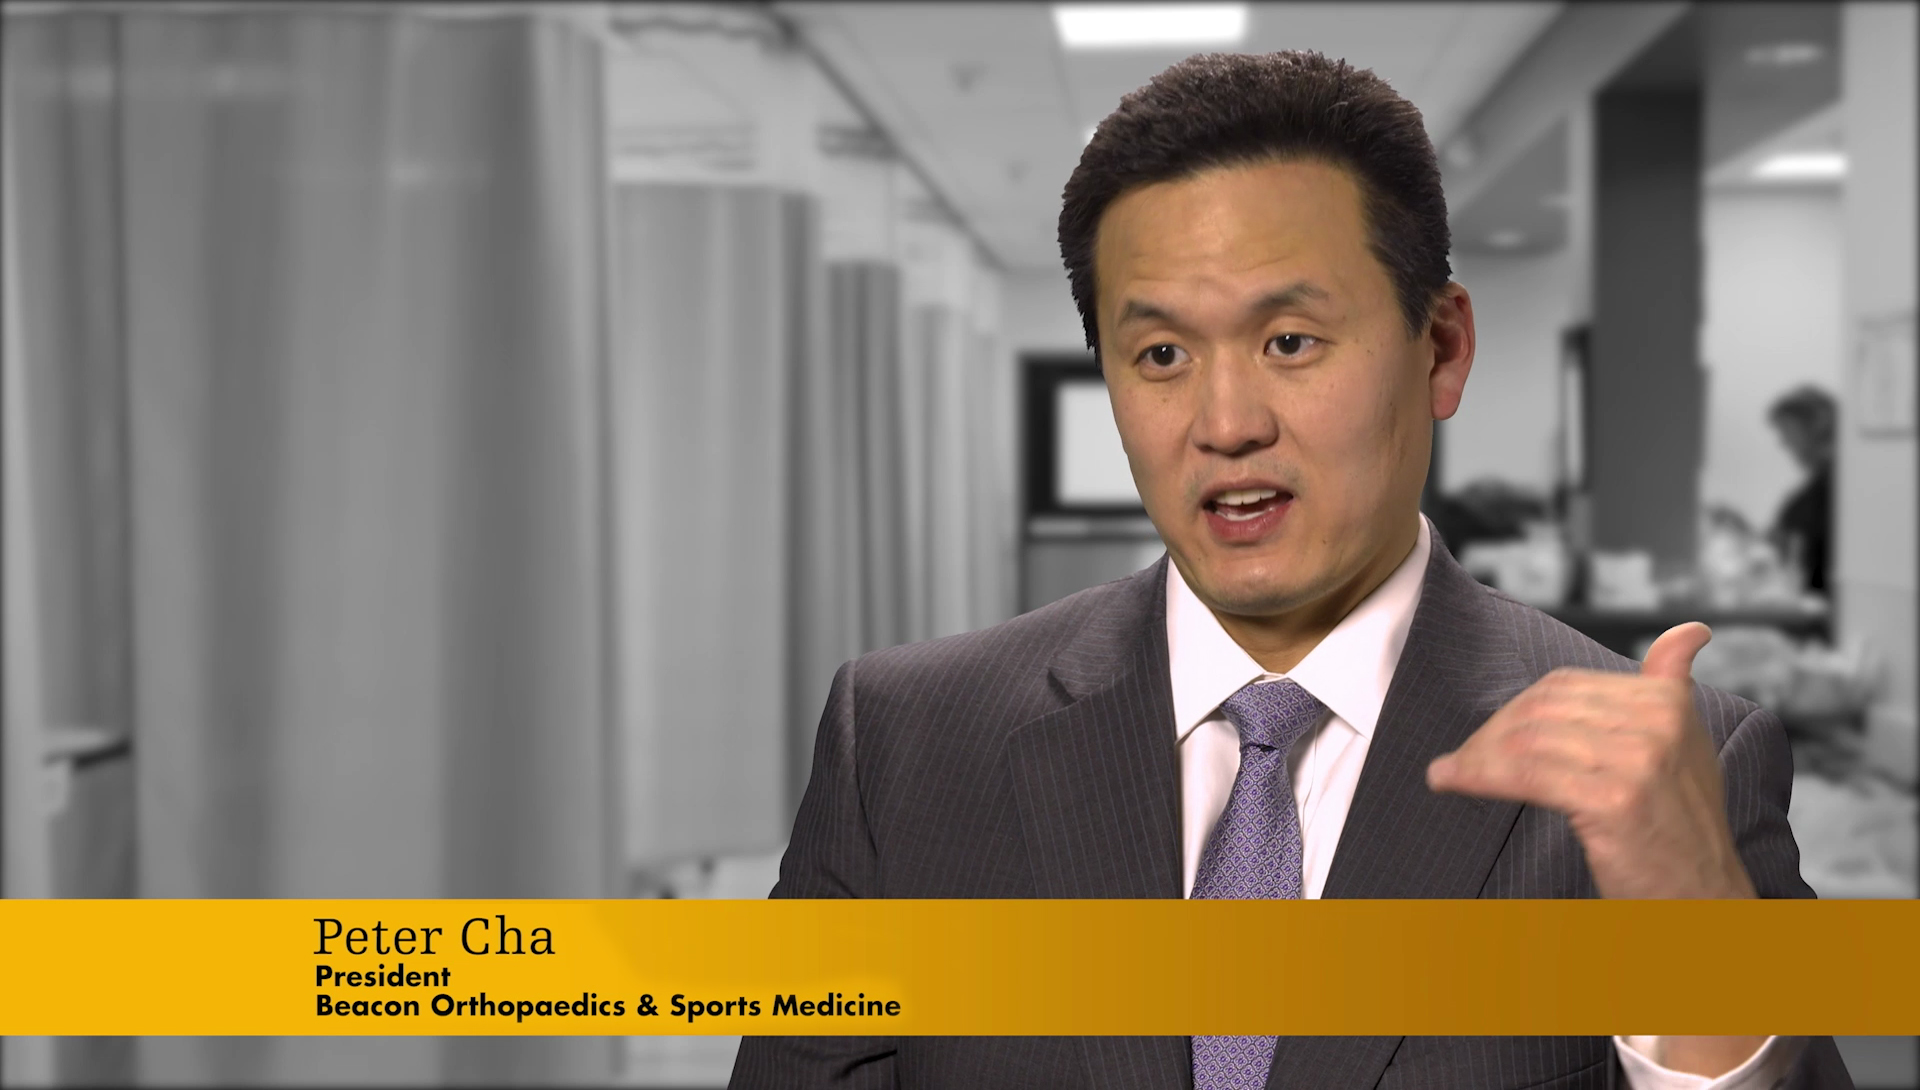 Peter Cha, M D  - Beacon Orthopaedics & Sports Medicine